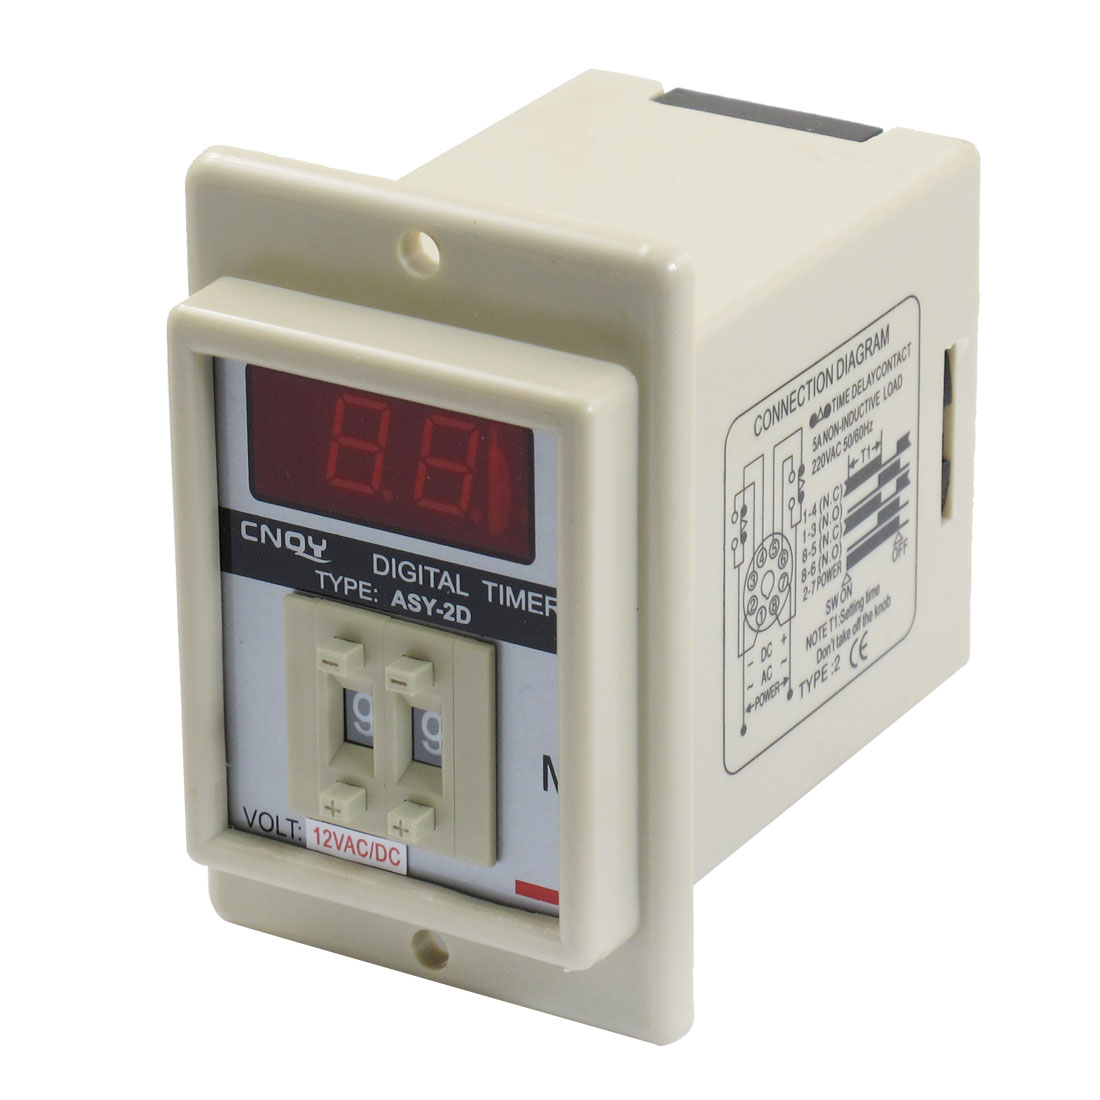 AC/DC 12V 8 Pin 1-99 Minute Digital Timer Time Delay Relay Beige ASY-3D